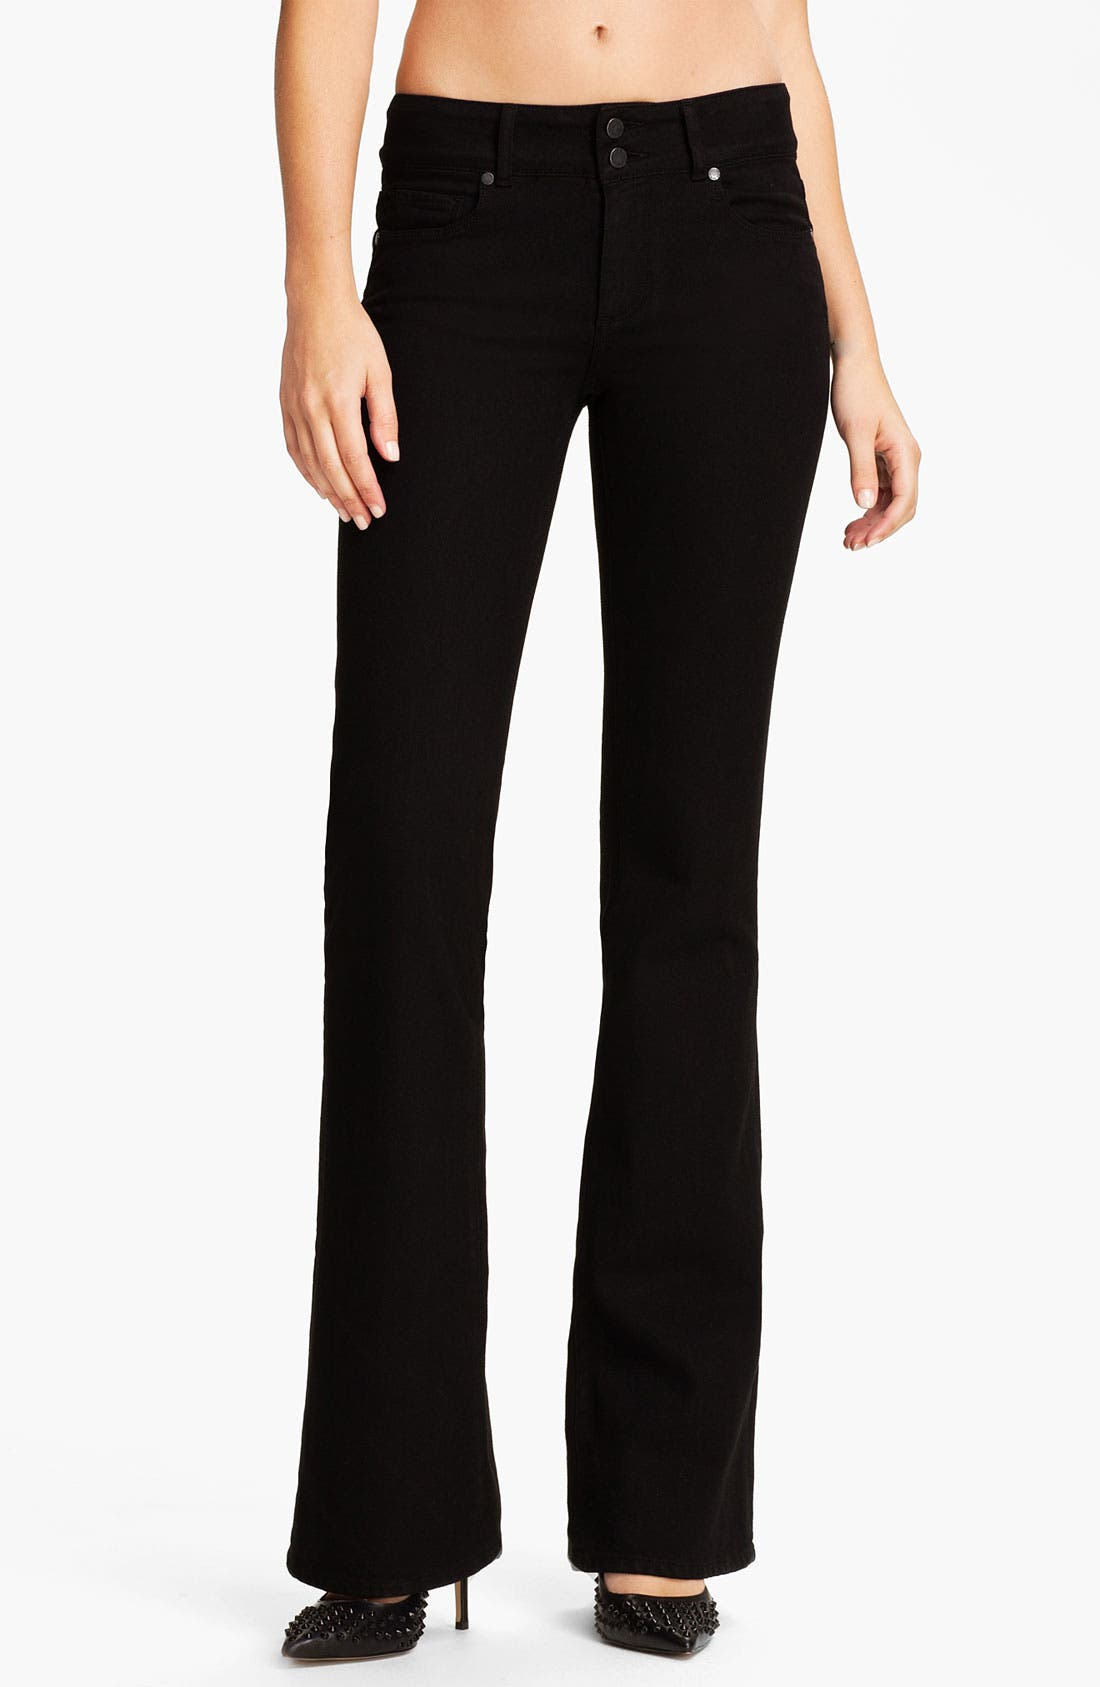 Alternate Image 1 Selected - Paige Denim 'Hidden Hills' Bootcut Stretch Jeans (Jet Black)